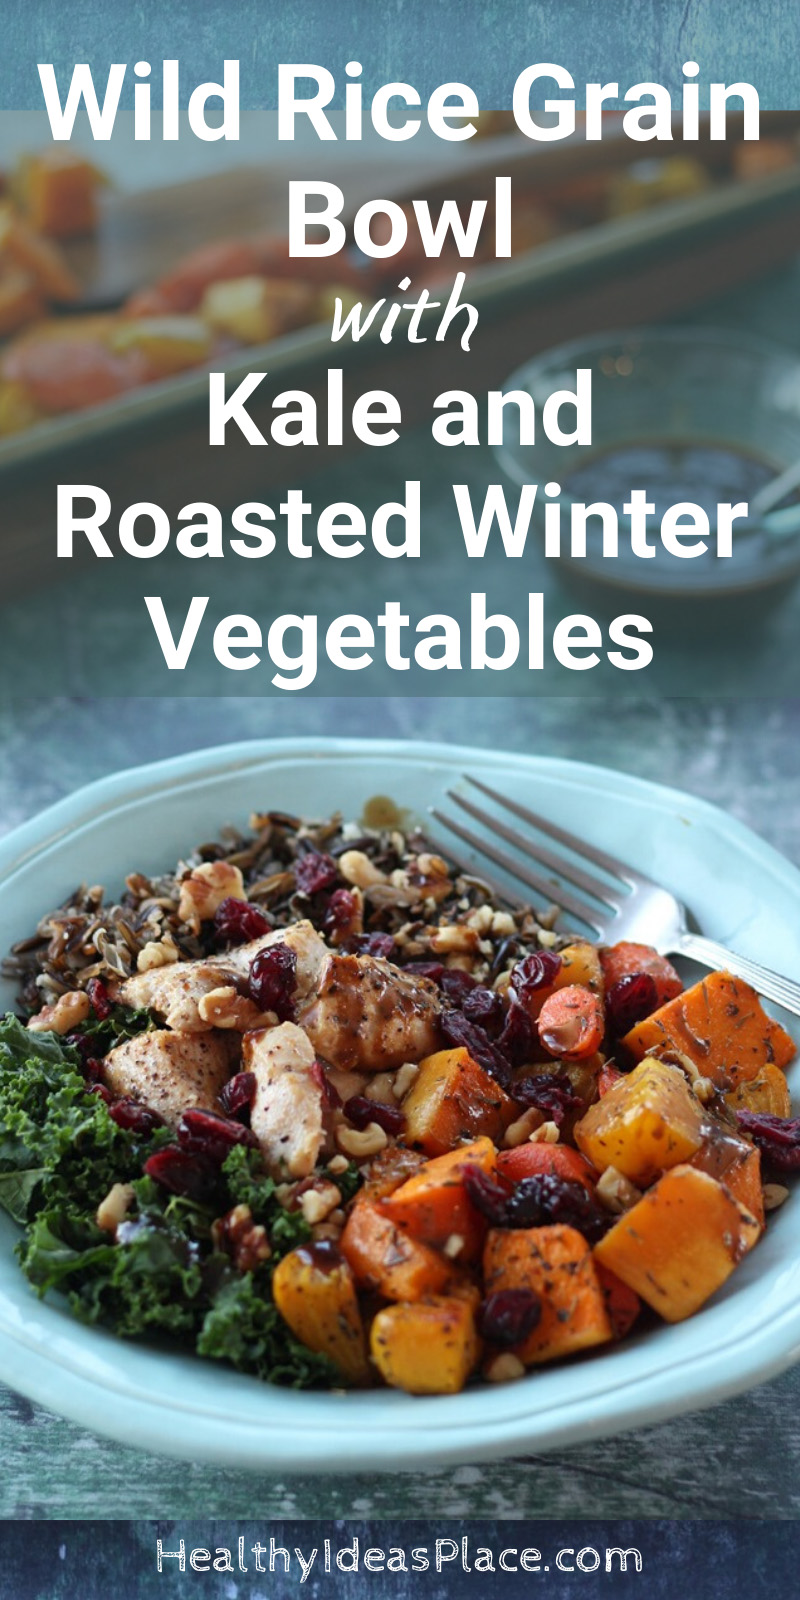 rice, chicken, kale, and roasted beets and squash in teal bowl